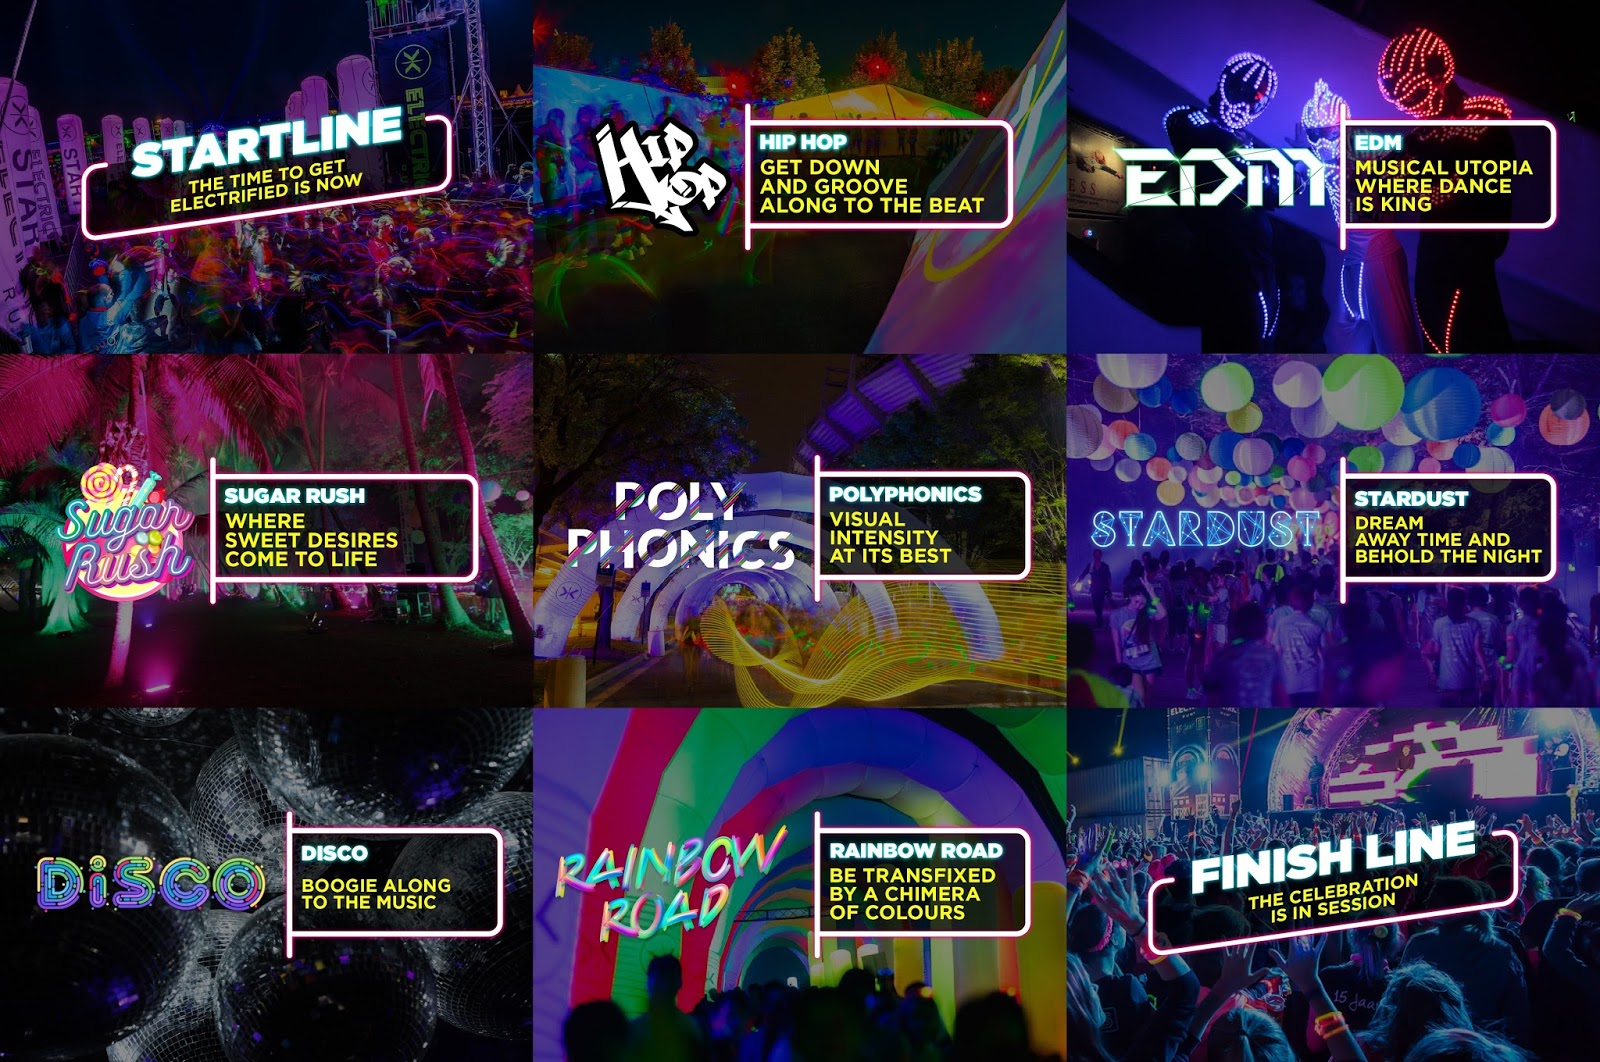 Also The Run This Year Will Feature Nine New Music Filled Course Lands Including Start Line Hip Hop Edm Sugar Rush Polyphonics Stardust Disco